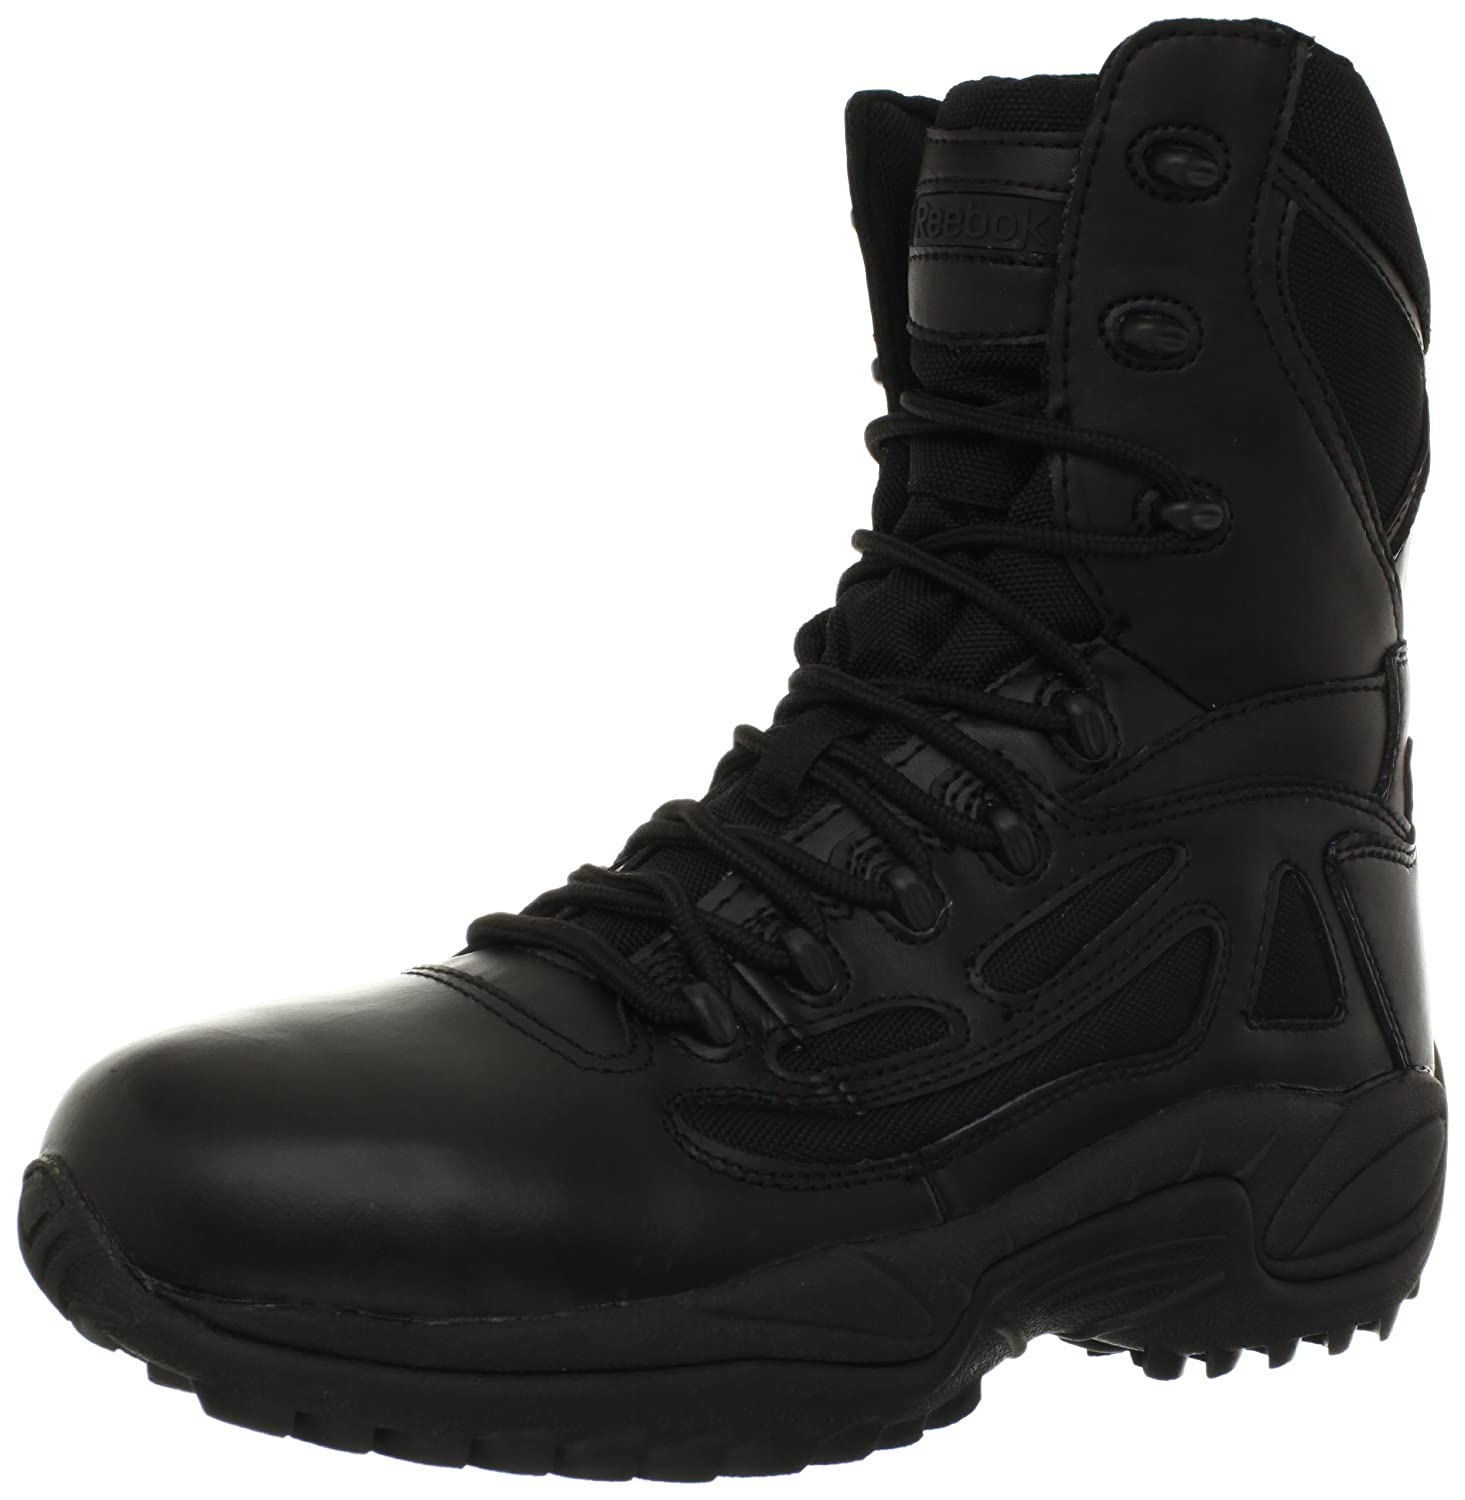 Reebok Duty-Rapid Response Response Response Rb Rb8877 8  Tactical Stiefel 81bc51